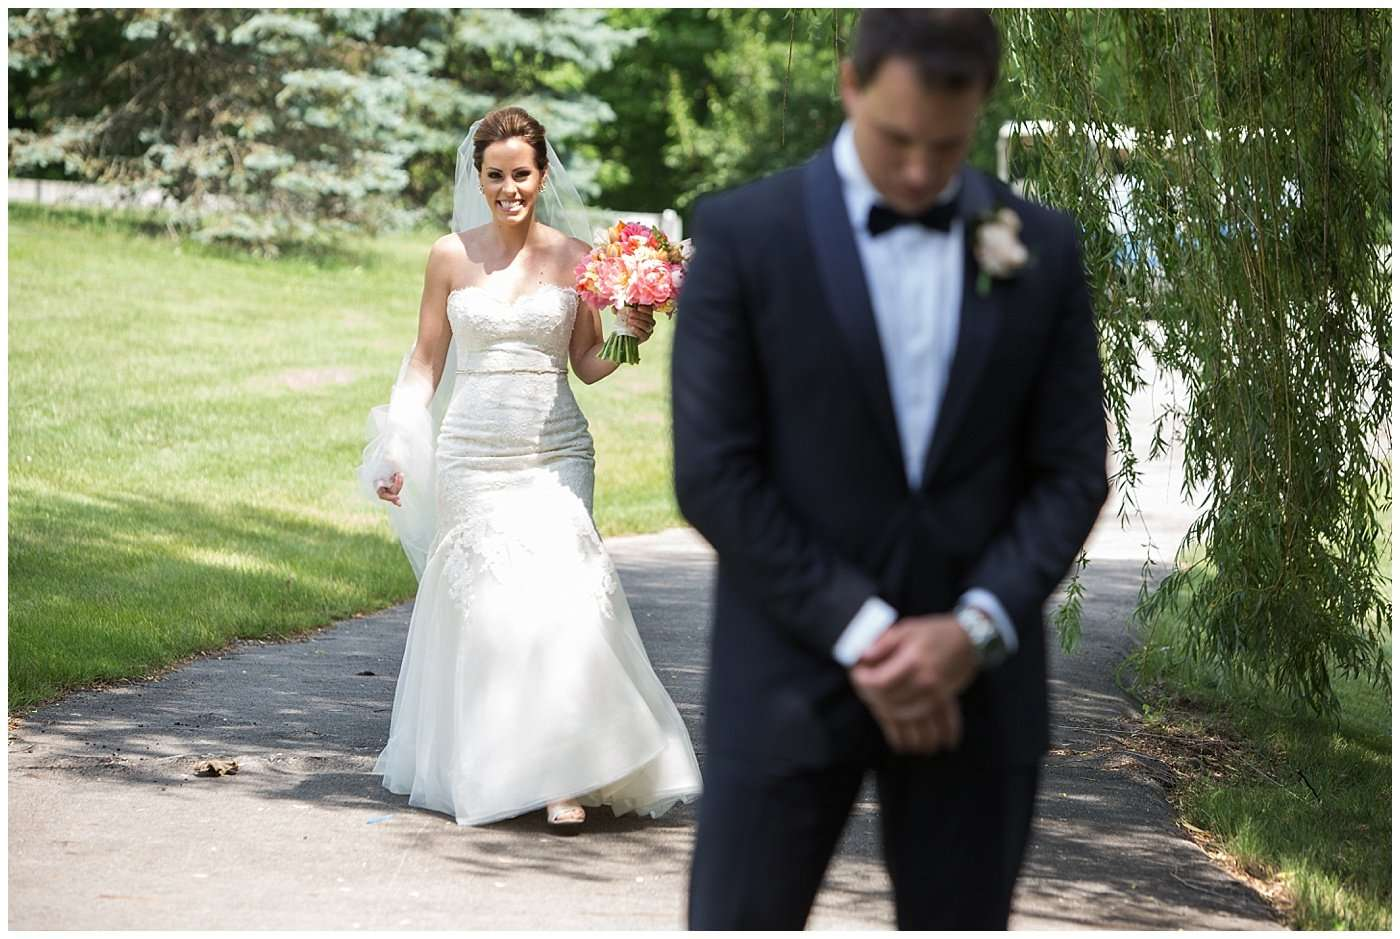 Kim & Lee | A Summer Wedding at Brookside Country Club 38